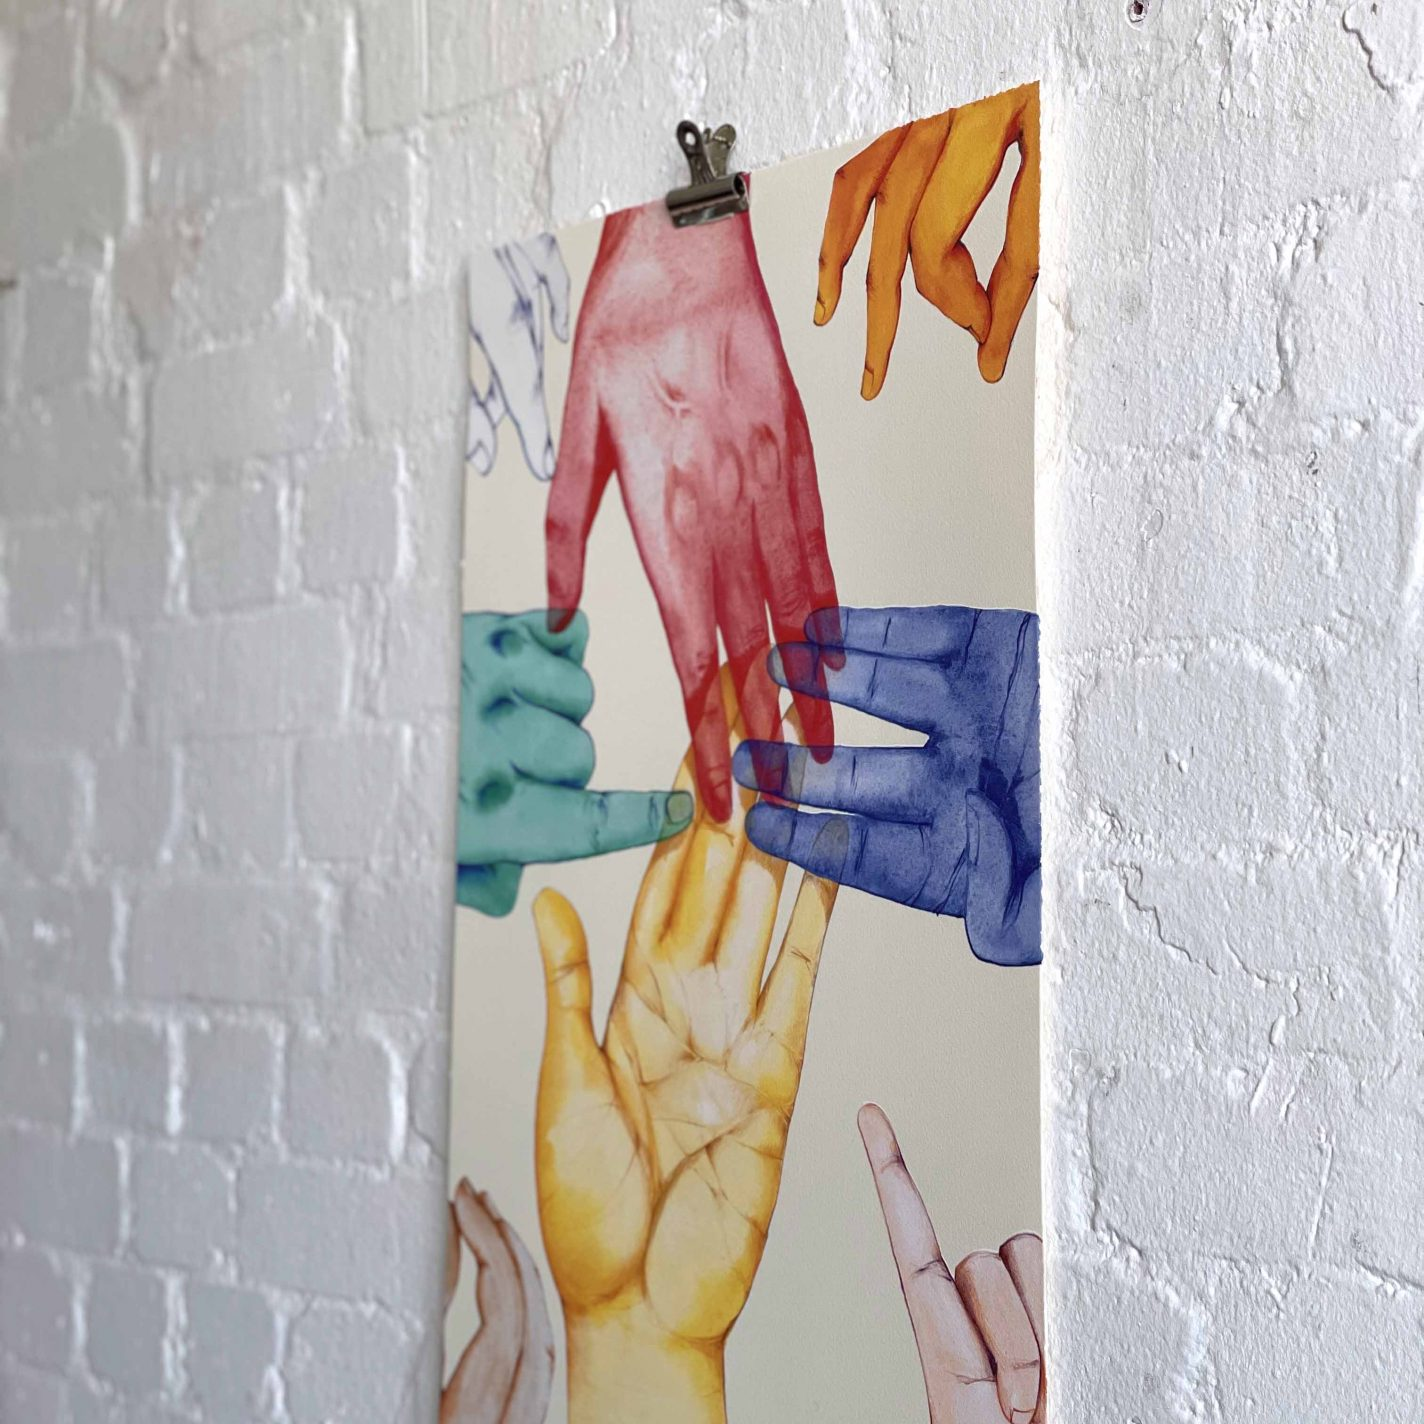 'THE HUMAN TOUCH'